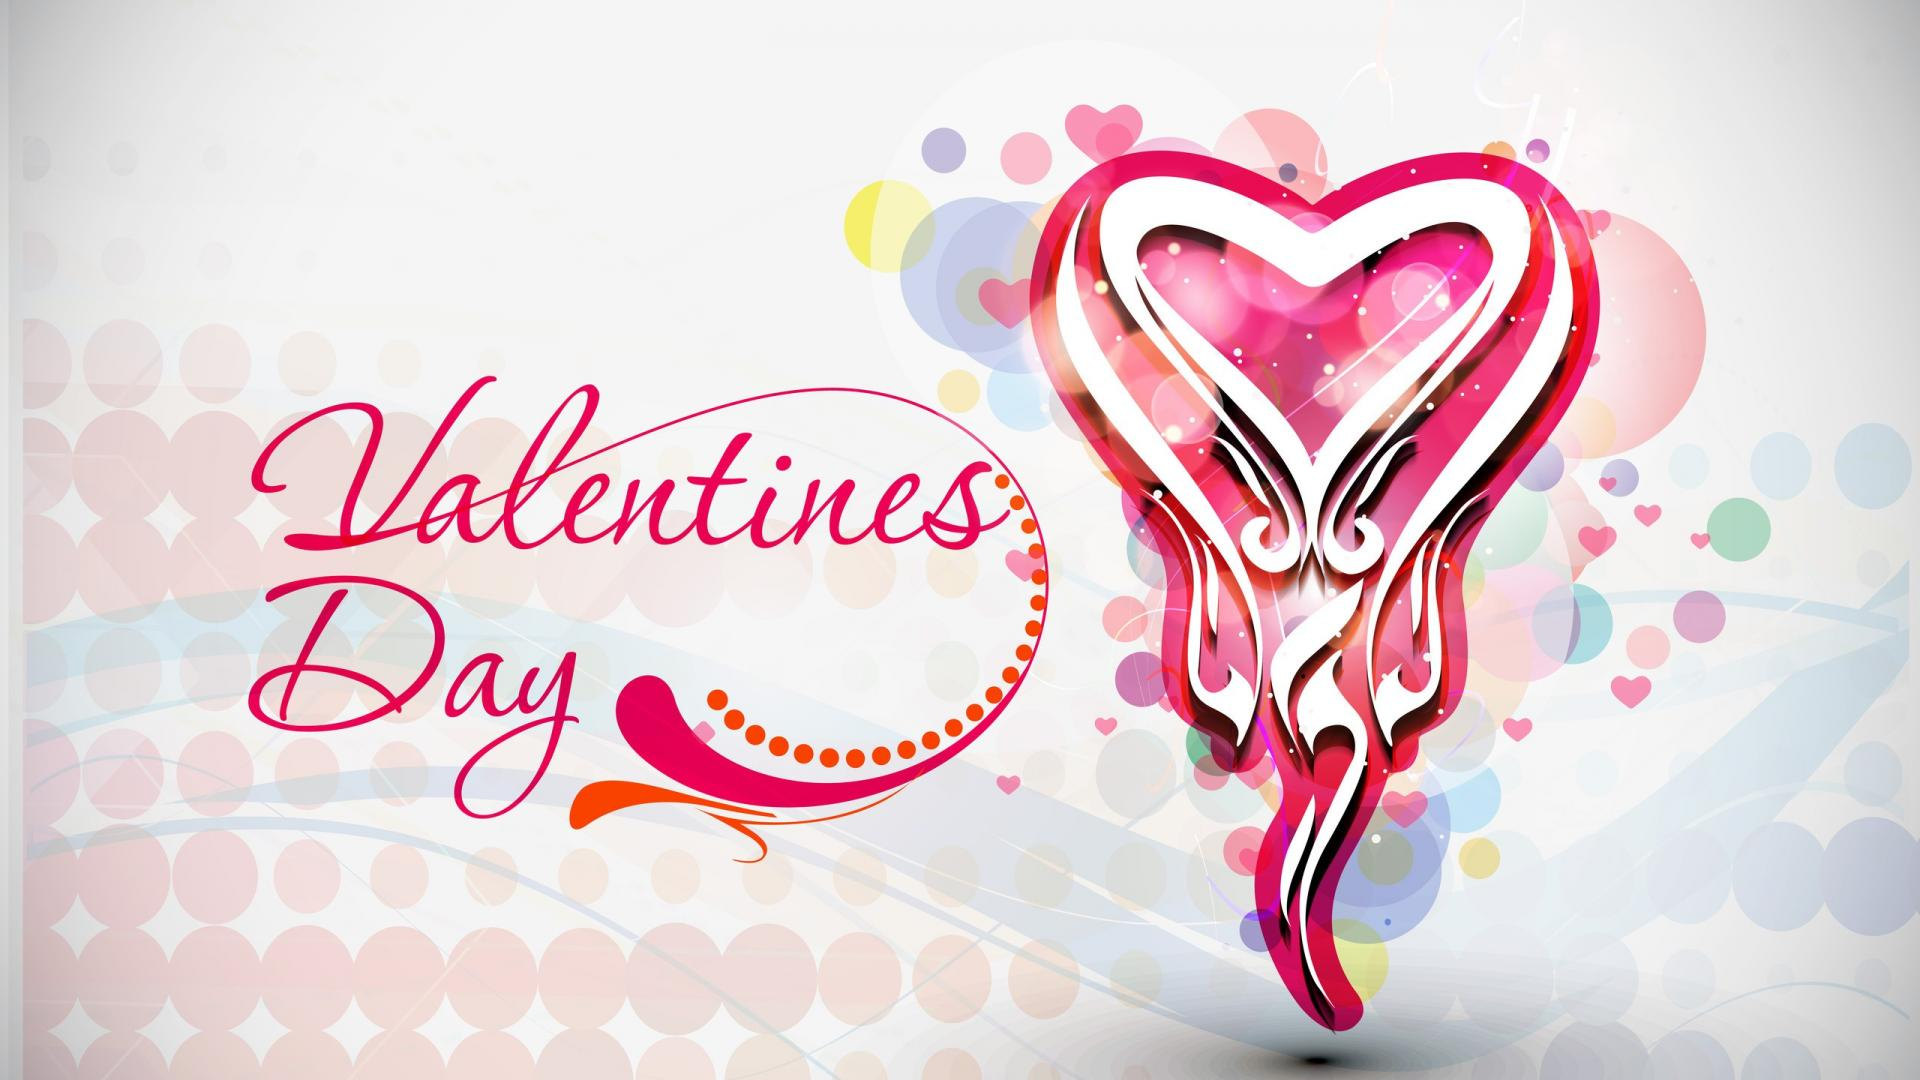 Valentines Day Hearts Pictures HD Wallpaper of Love - hdwallpaper2013 ...